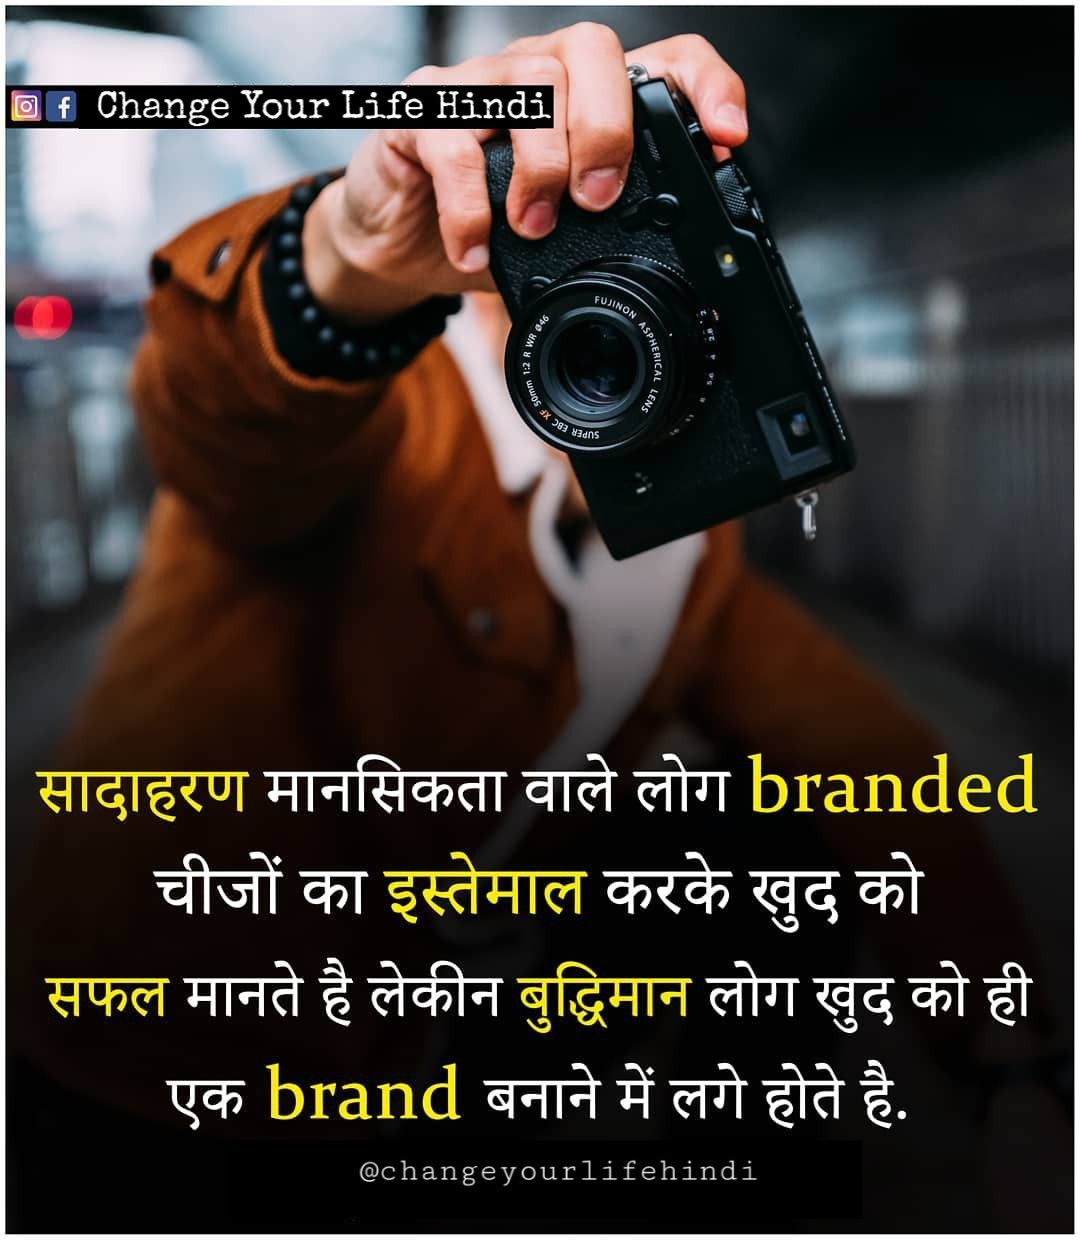 Change Your Life Hindi in 2020 Life quotes to live by